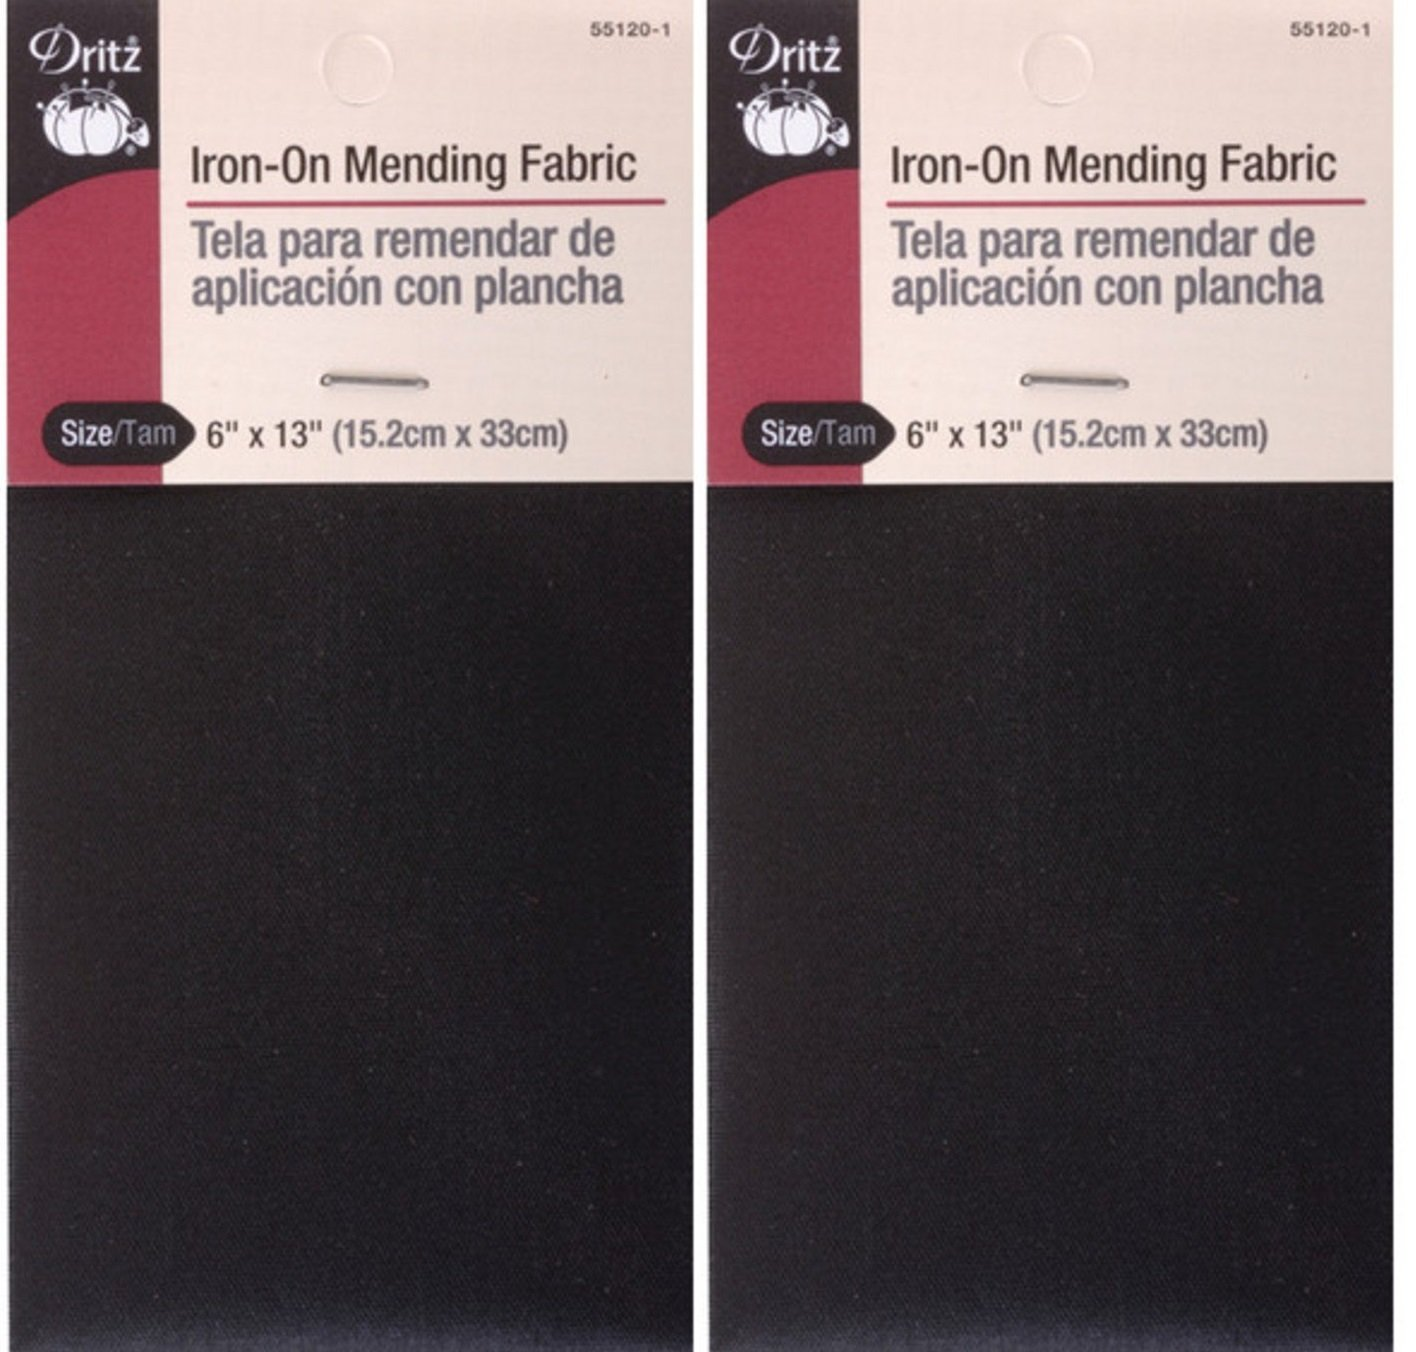 2 Pack Black Dritz 55120-1 Iron-On Mending Fabric 6 by 13-Inch